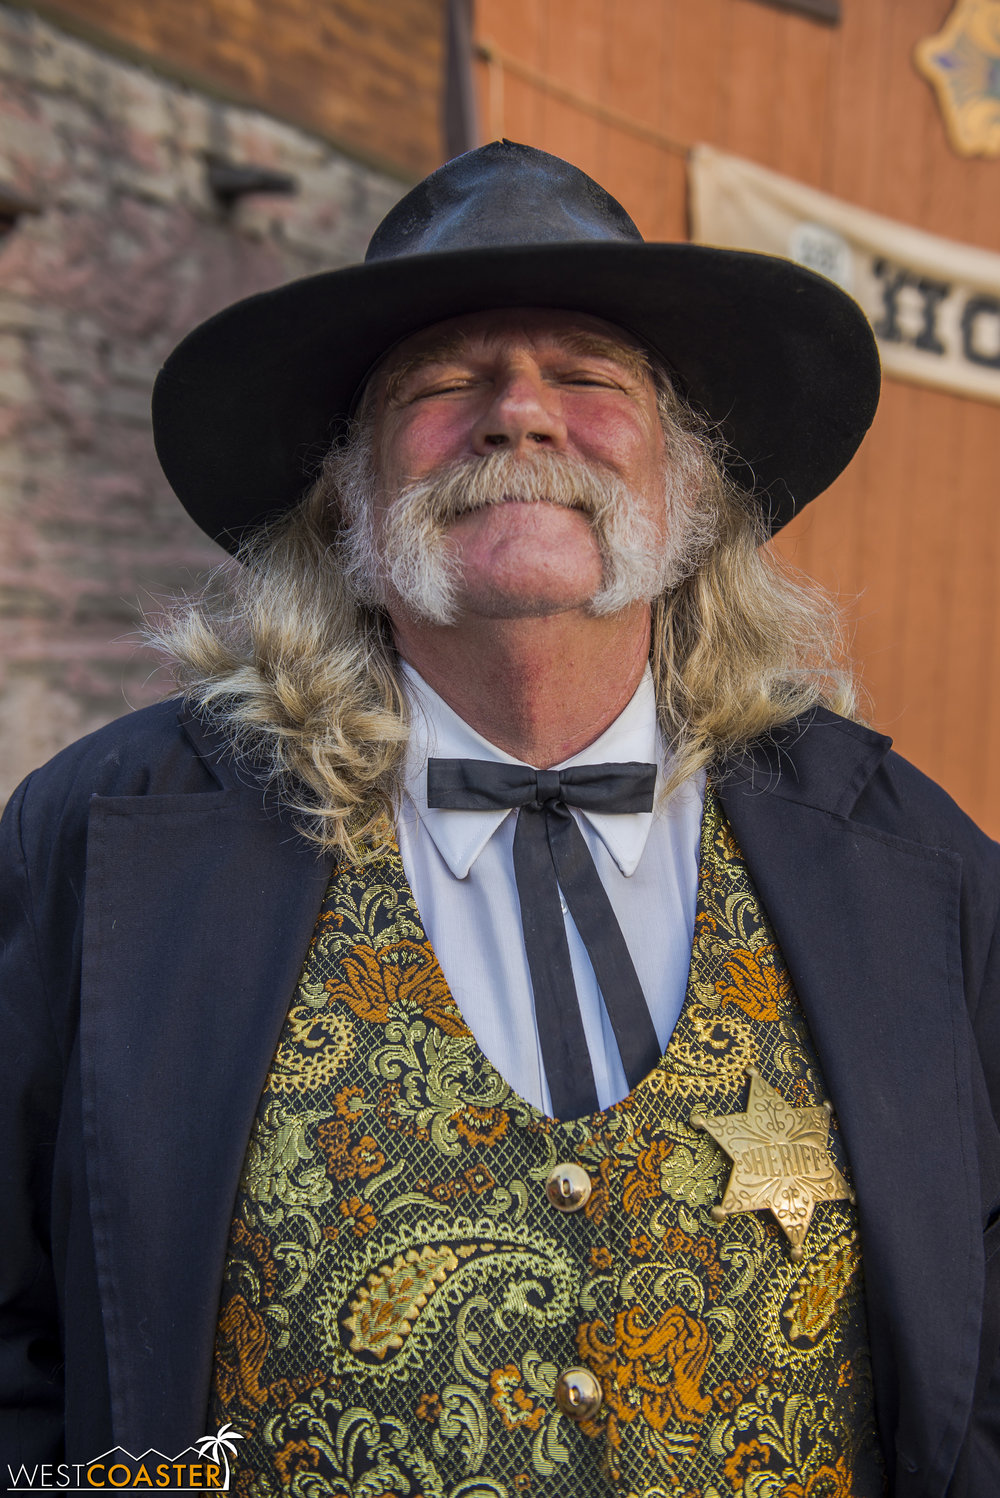 Of course, few are more beloved and iconic than the regular Calico Sheriff, Bryce Wheeler himself.